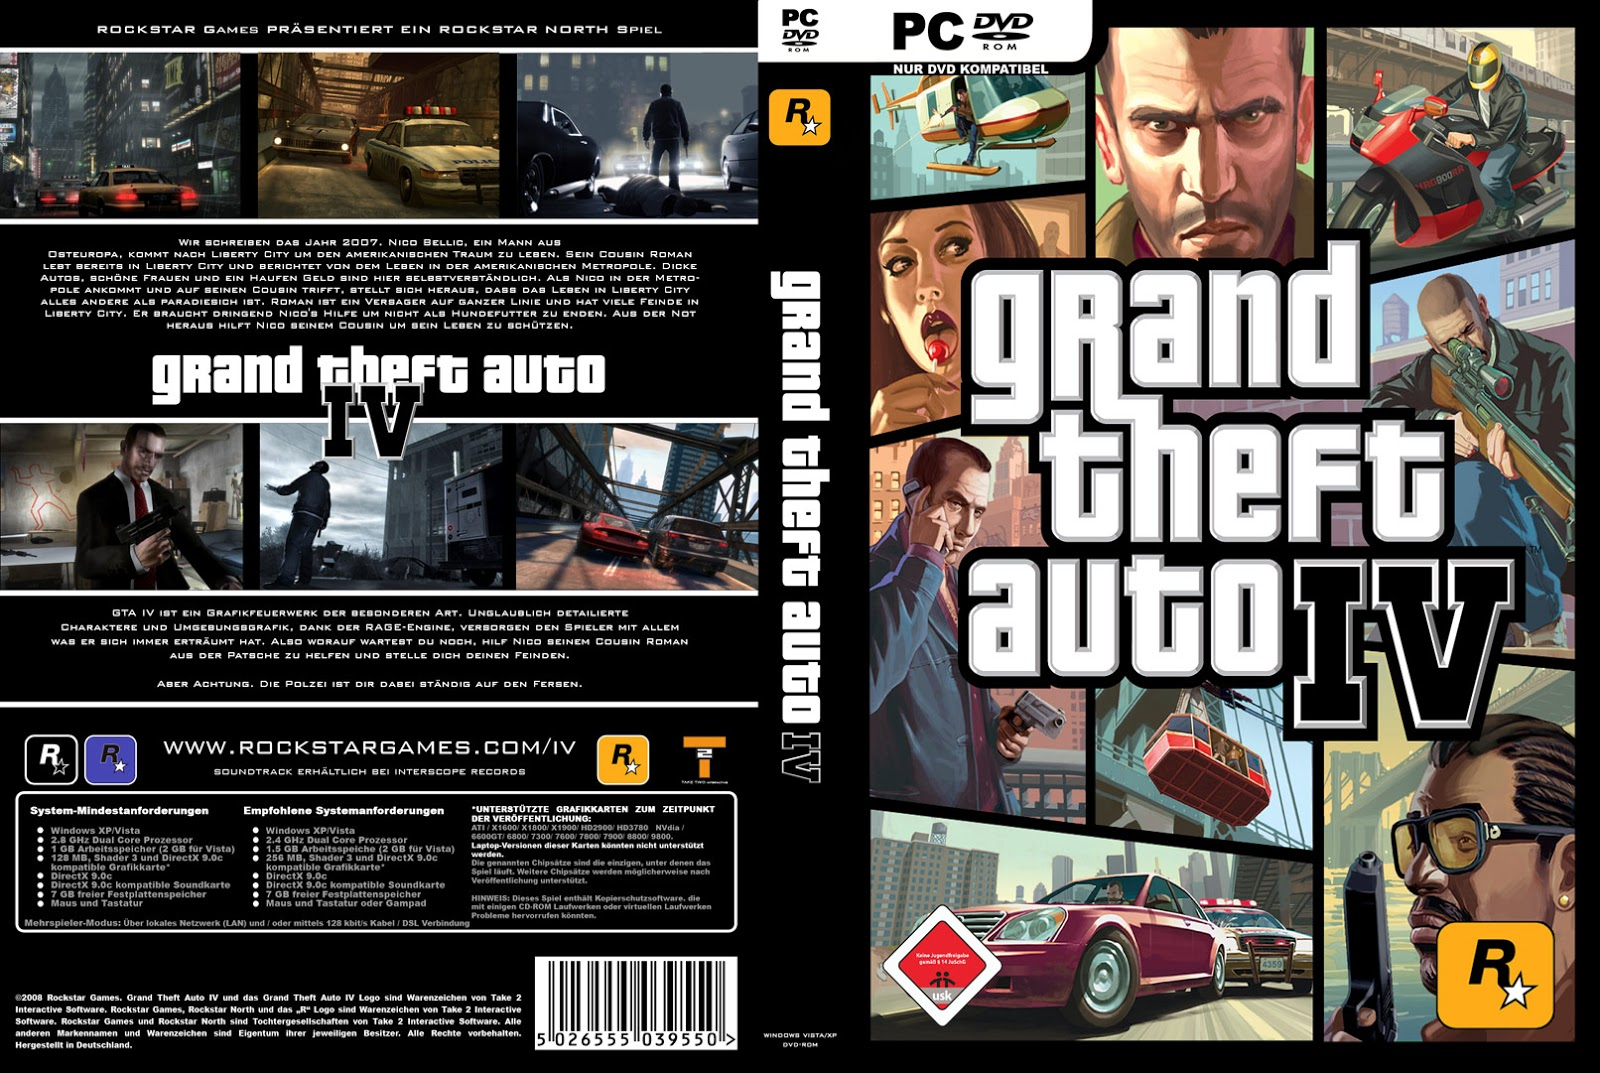 GTA PC GAME: GTA 4 PC Full Version Download